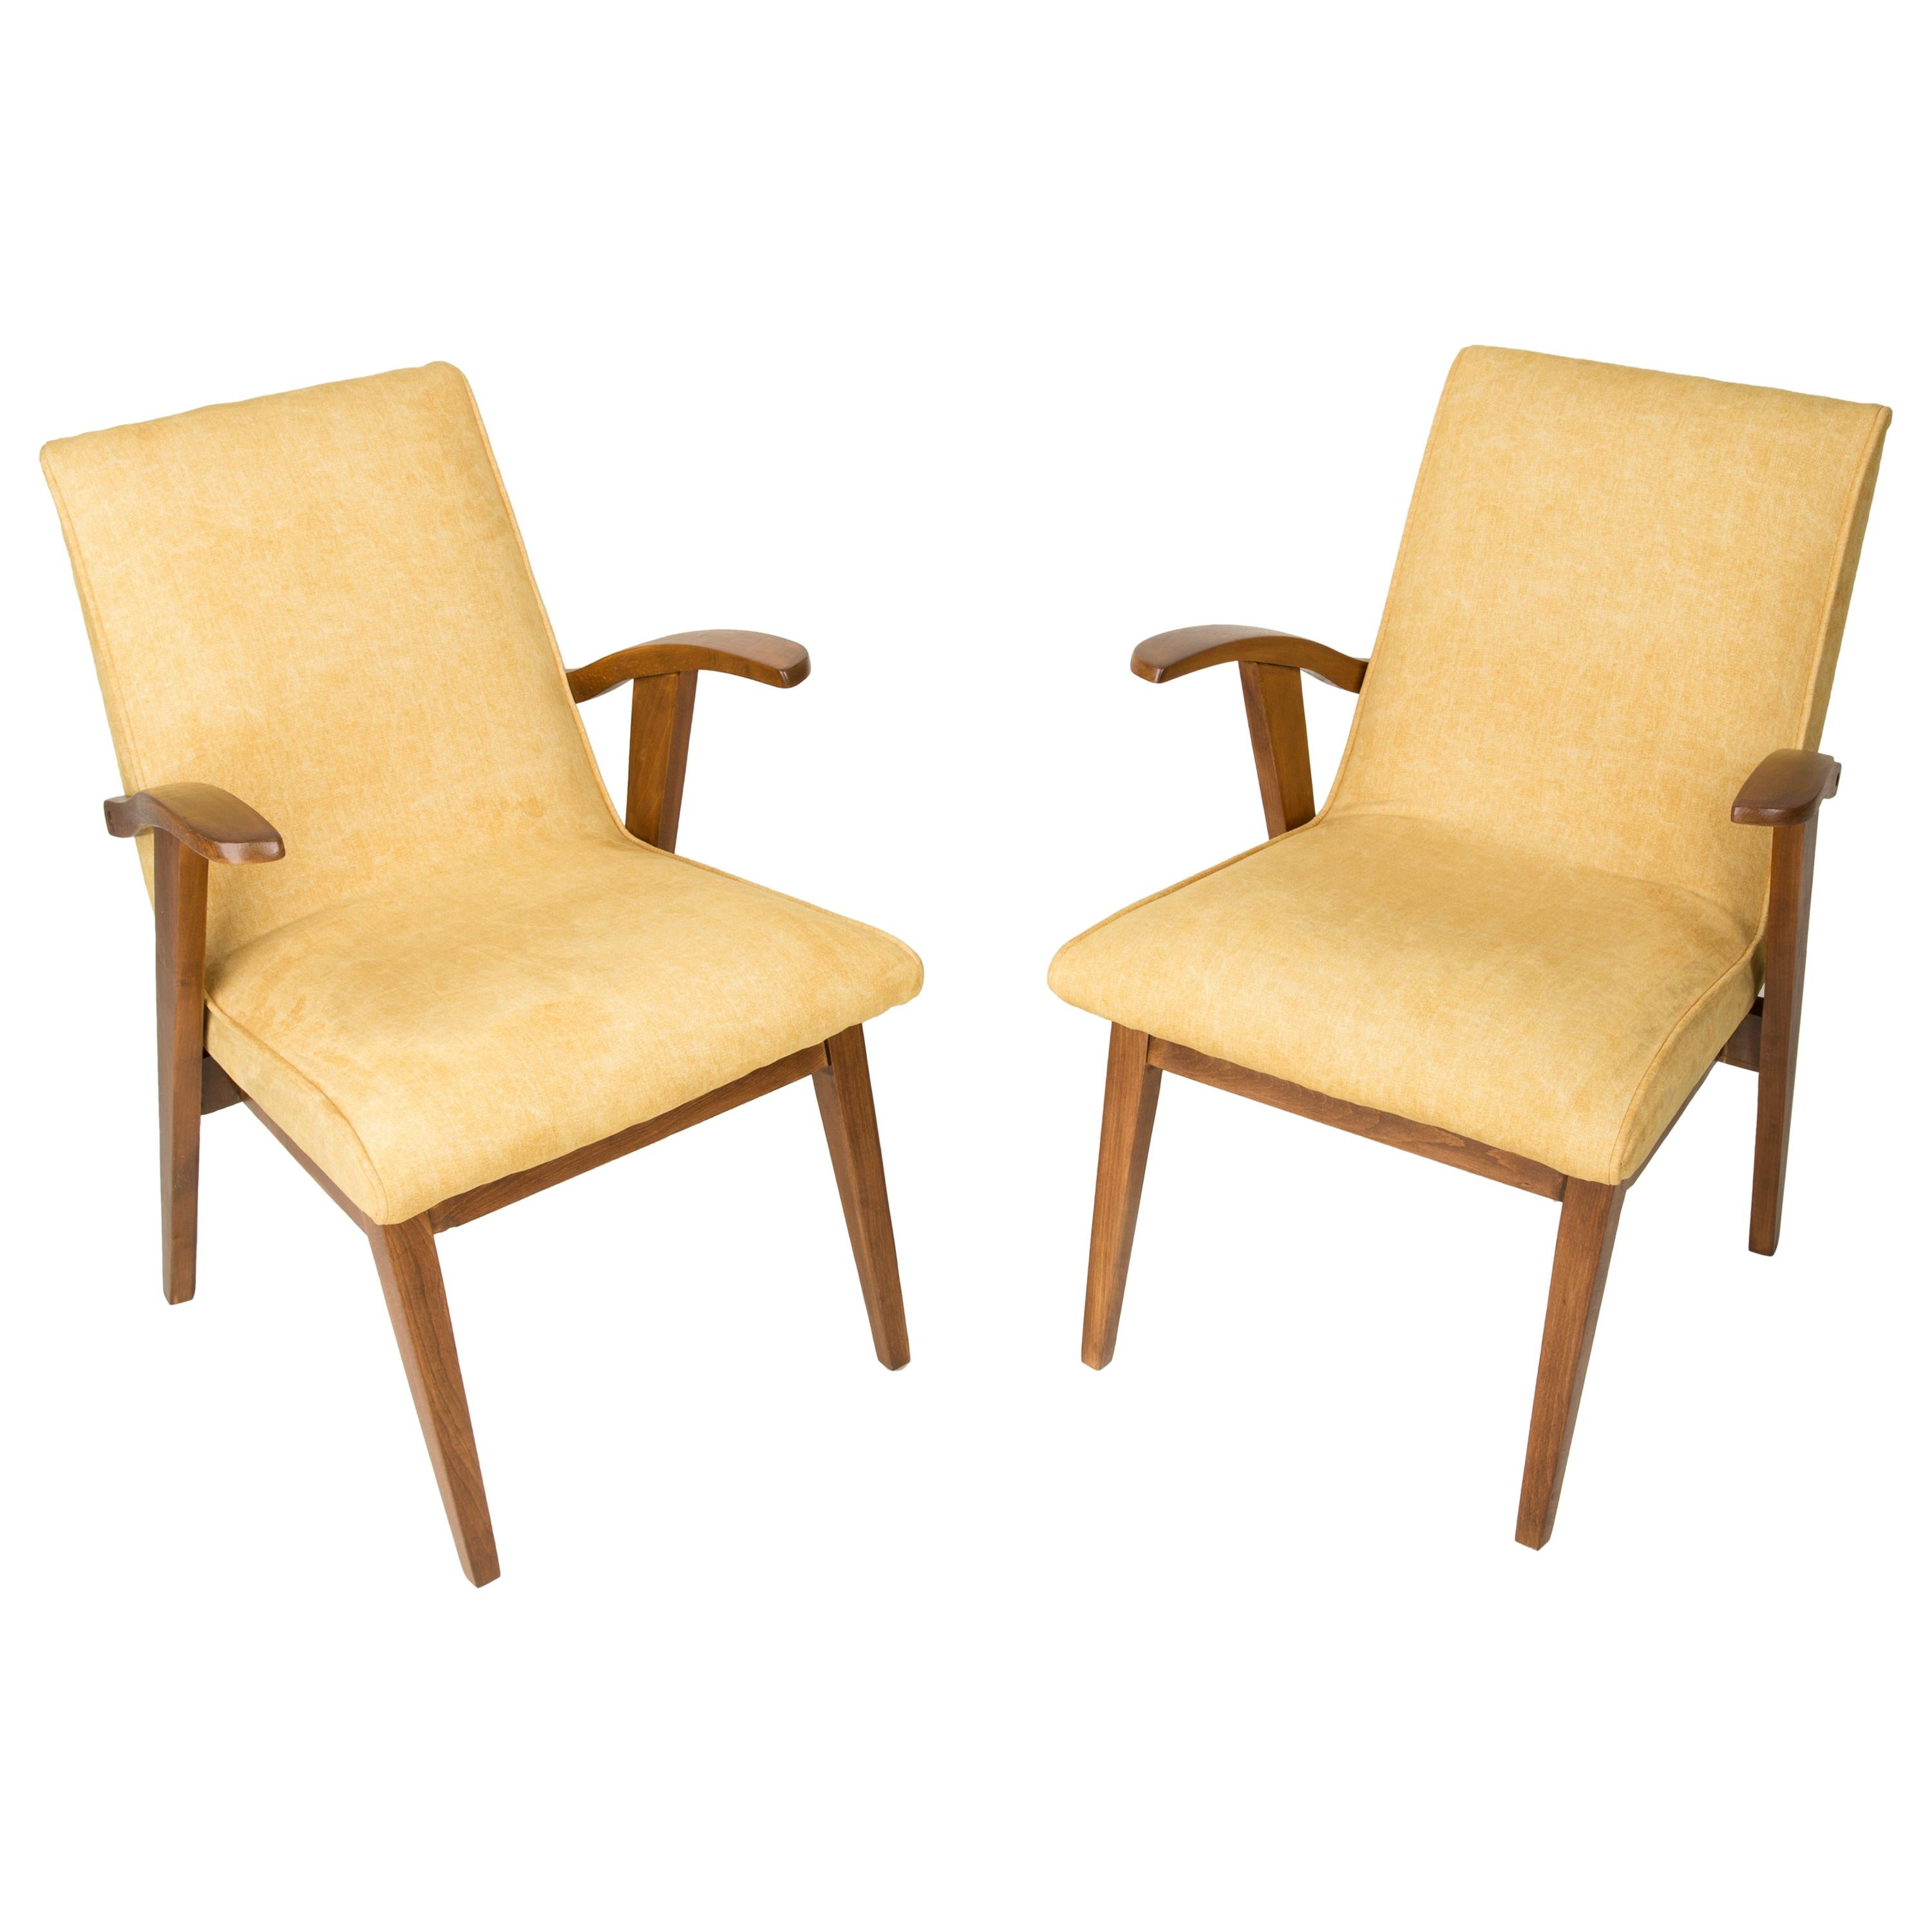 Set of Two Vintage Yellow Chairs, 1960s